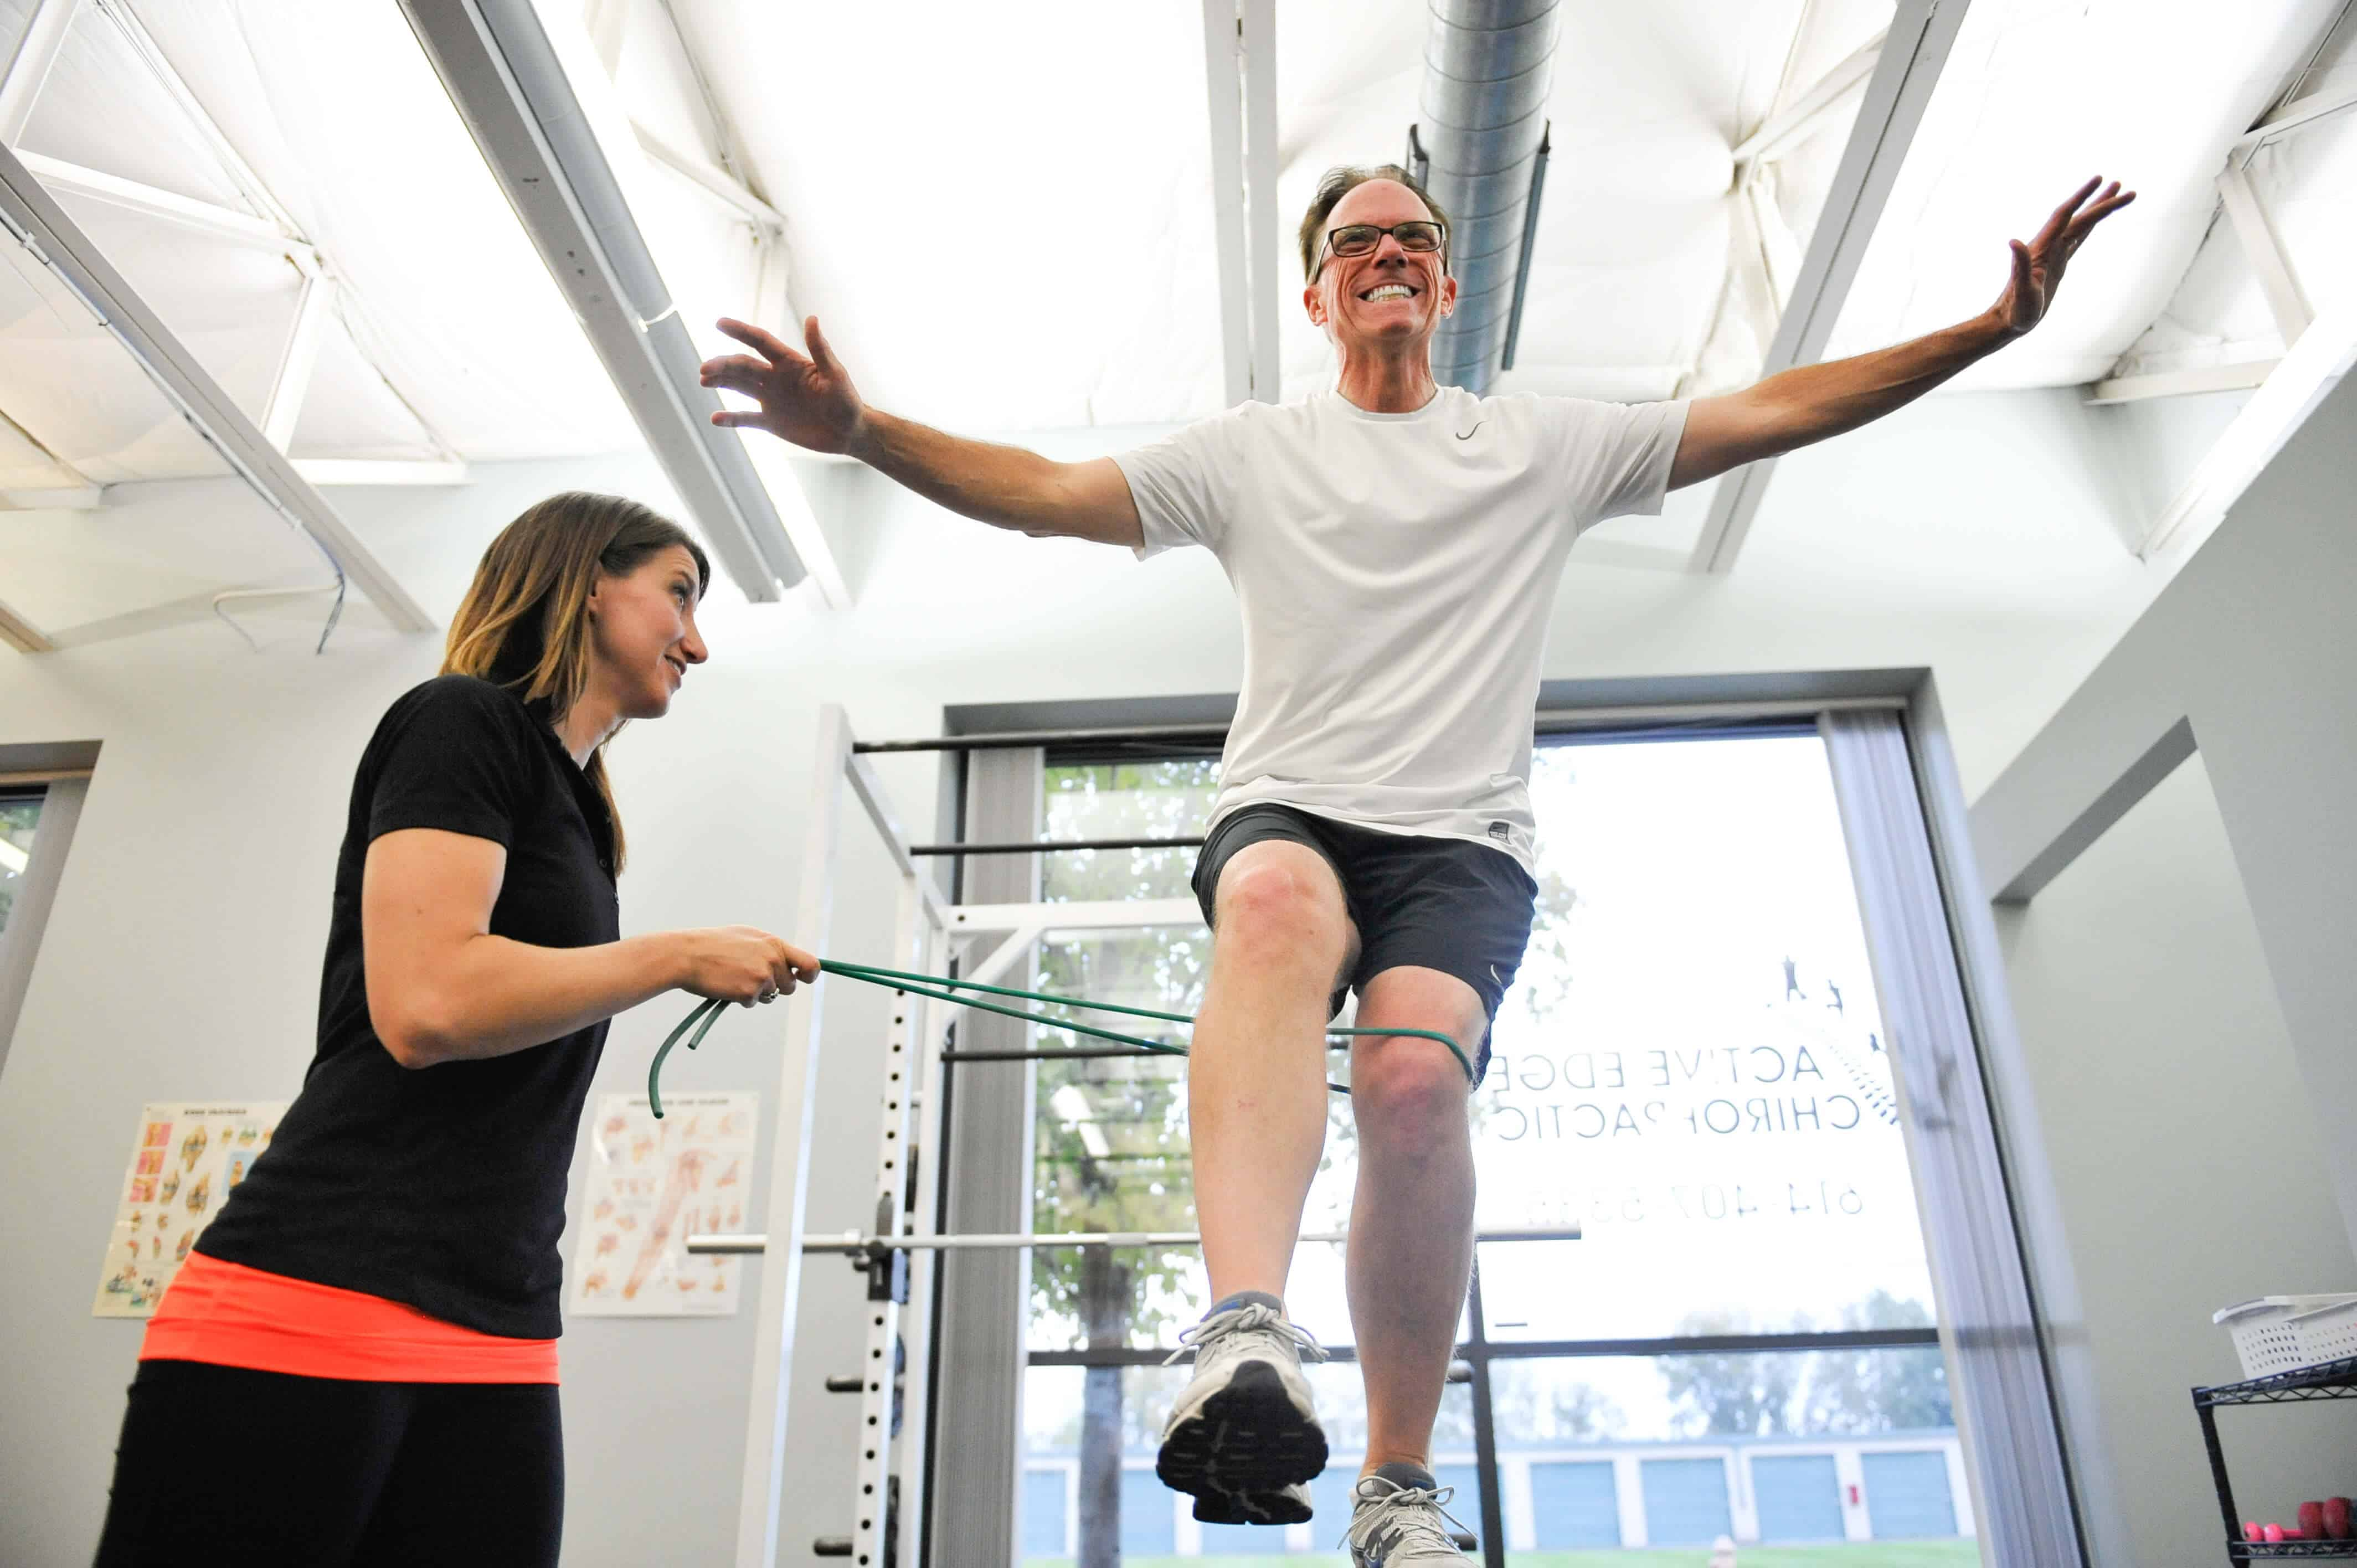 Man balancing as part of physical therapy rehabilitation